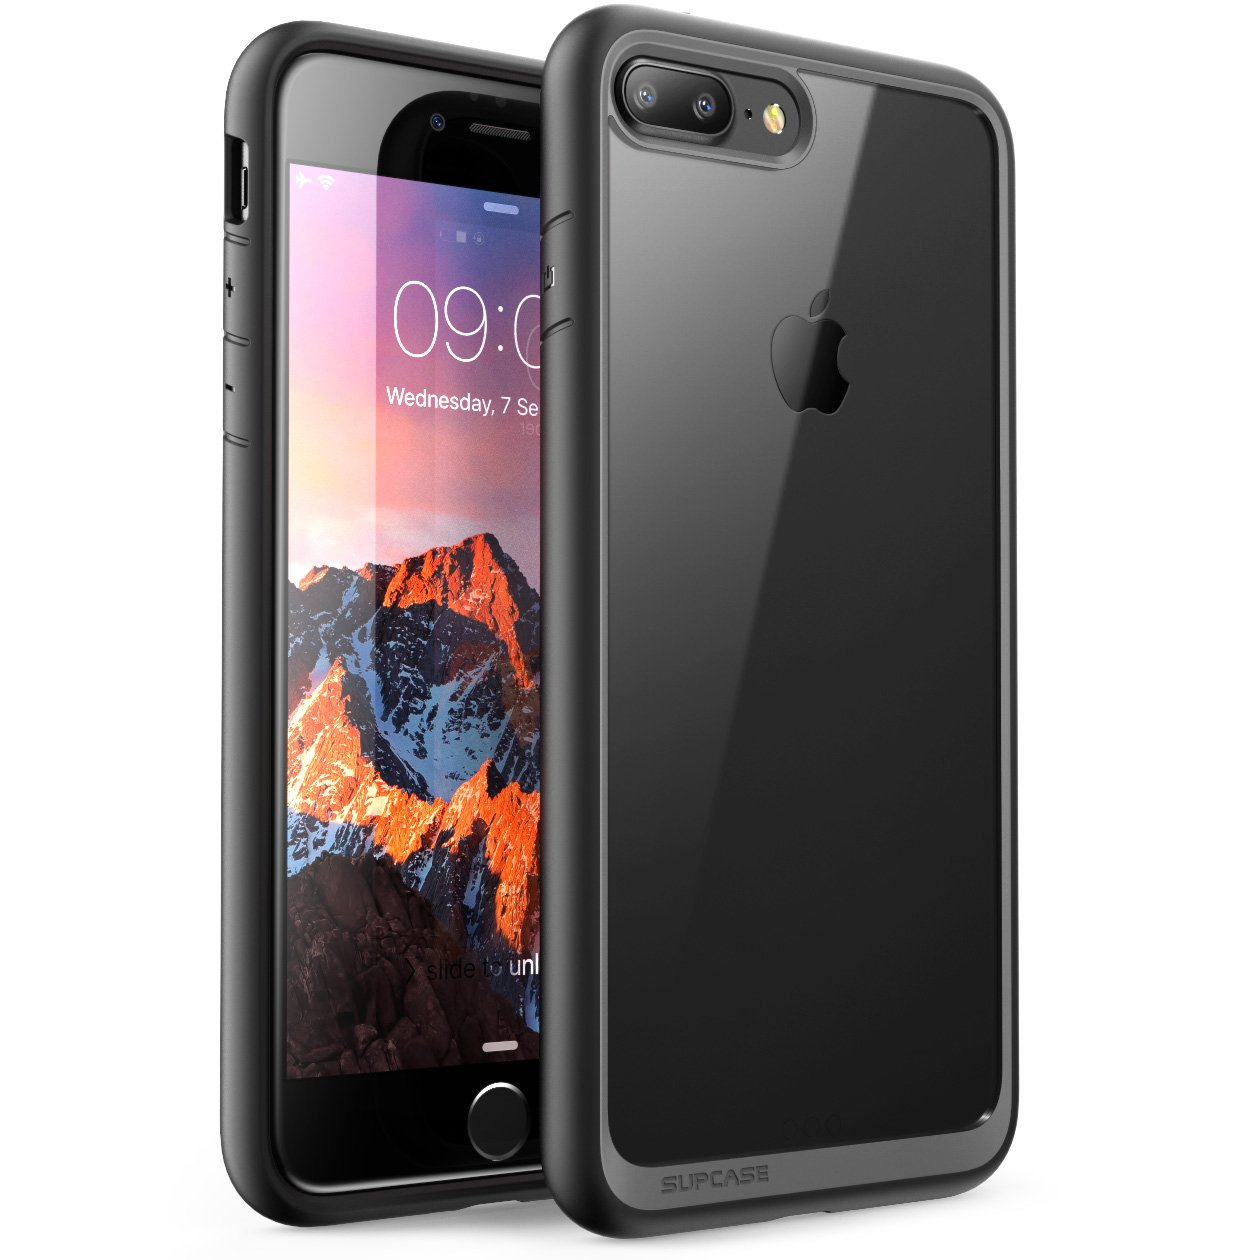 iphone 8 plus privacy screen protector glass. Black Bedroom Furniture Sets. Home Design Ideas